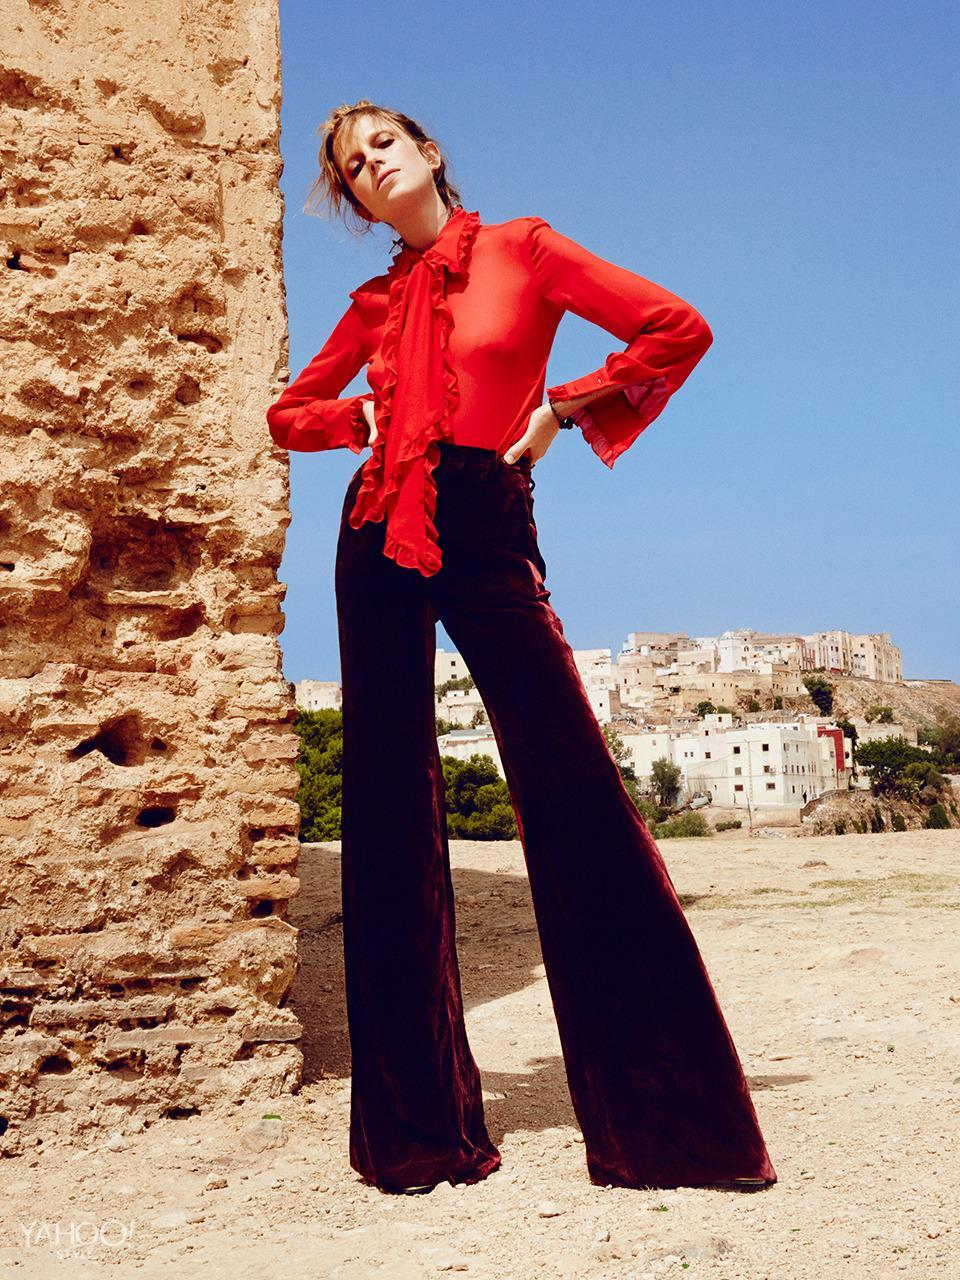 """<p>Different shades of the same color, like this cherry red blouse and burgundy velvet pants by Pucci, always works. <br>Emilio Pucci Long Ruffled Silk Georgette Shirt, $1,765, <a href=""""http://www.emiliopucci.com/us/shop-online/women/long-sleeve-shirt_cod37741025pt.html"""" rel=""""nofollow noopener"""" target=""""_blank"""" data-ylk=""""slk:emiliopucci.com"""" class=""""link rapid-noclick-resp"""">emiliopucci.com </a><br>Emilio Pucci Bordeaux Velvet Trousers, $1,505, <a href=""""http://www.emiliopucci.com/us/shop-online/women/dress-pants_cod36719640cb.html"""" rel=""""nofollow noopener"""" target=""""_blank"""" data-ylk=""""slk:emiliopucci.com"""" class=""""link rapid-noclick-resp"""">emiliopucci.com</a><br>Lanvin Gold Lamé Calf Heeled Boot, $1,985, Available at Saks Fifth Avenue In New York, 212.753.4000<br>New York Vintage Bracelet, Price Upon Request, <a href=""""http://newyorkvintage.com/"""" rel=""""nofollow noopener"""" target=""""_blank"""" data-ylk=""""slk:newyorkvintage.com"""" class=""""link rapid-noclick-resp"""">newyorkvintage.com</a></p>"""